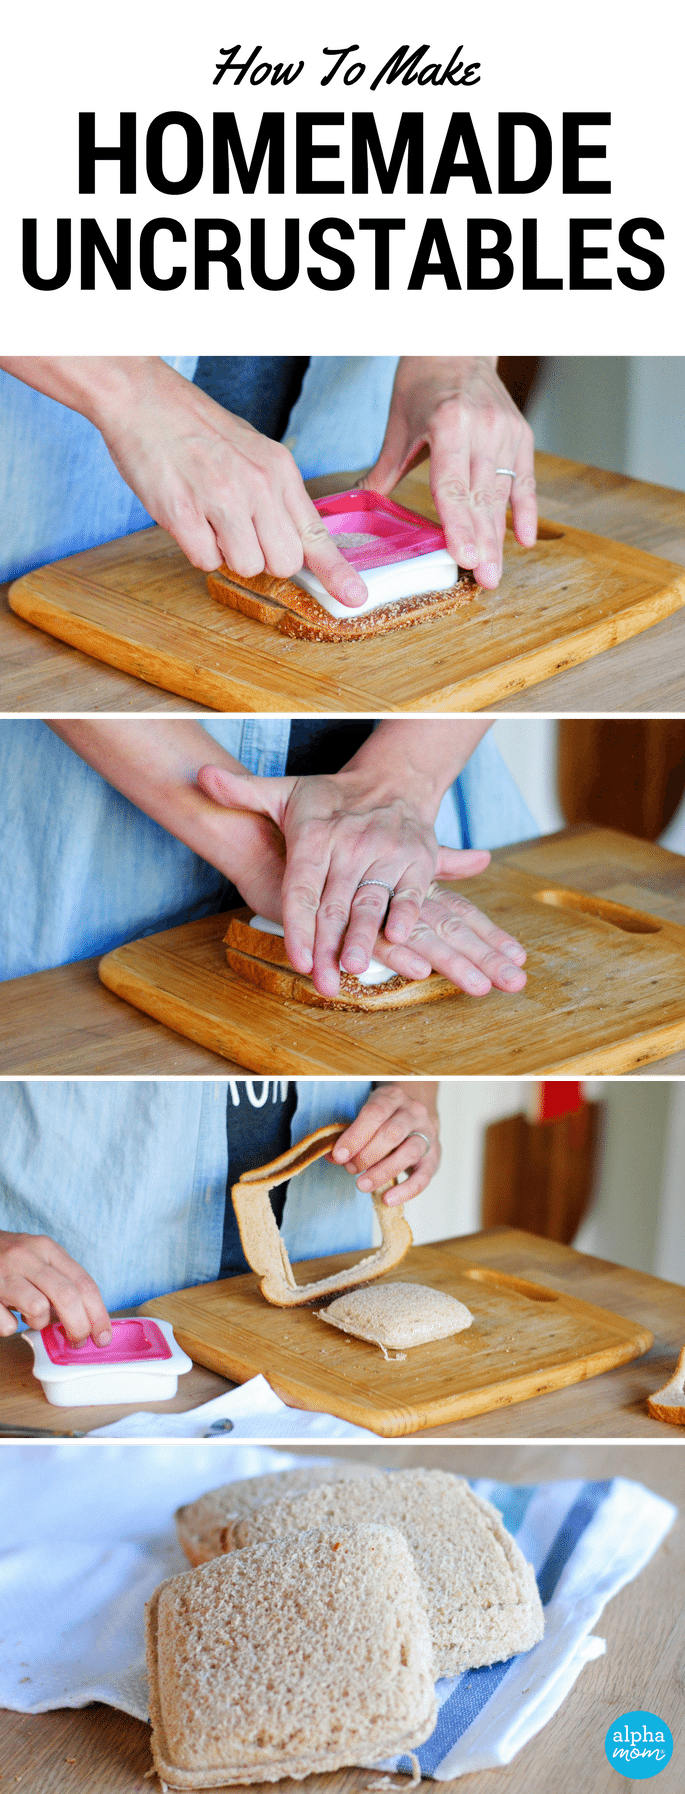 How to Make Your Own Homemade Uncrustables by Amalah for Alphamom.com